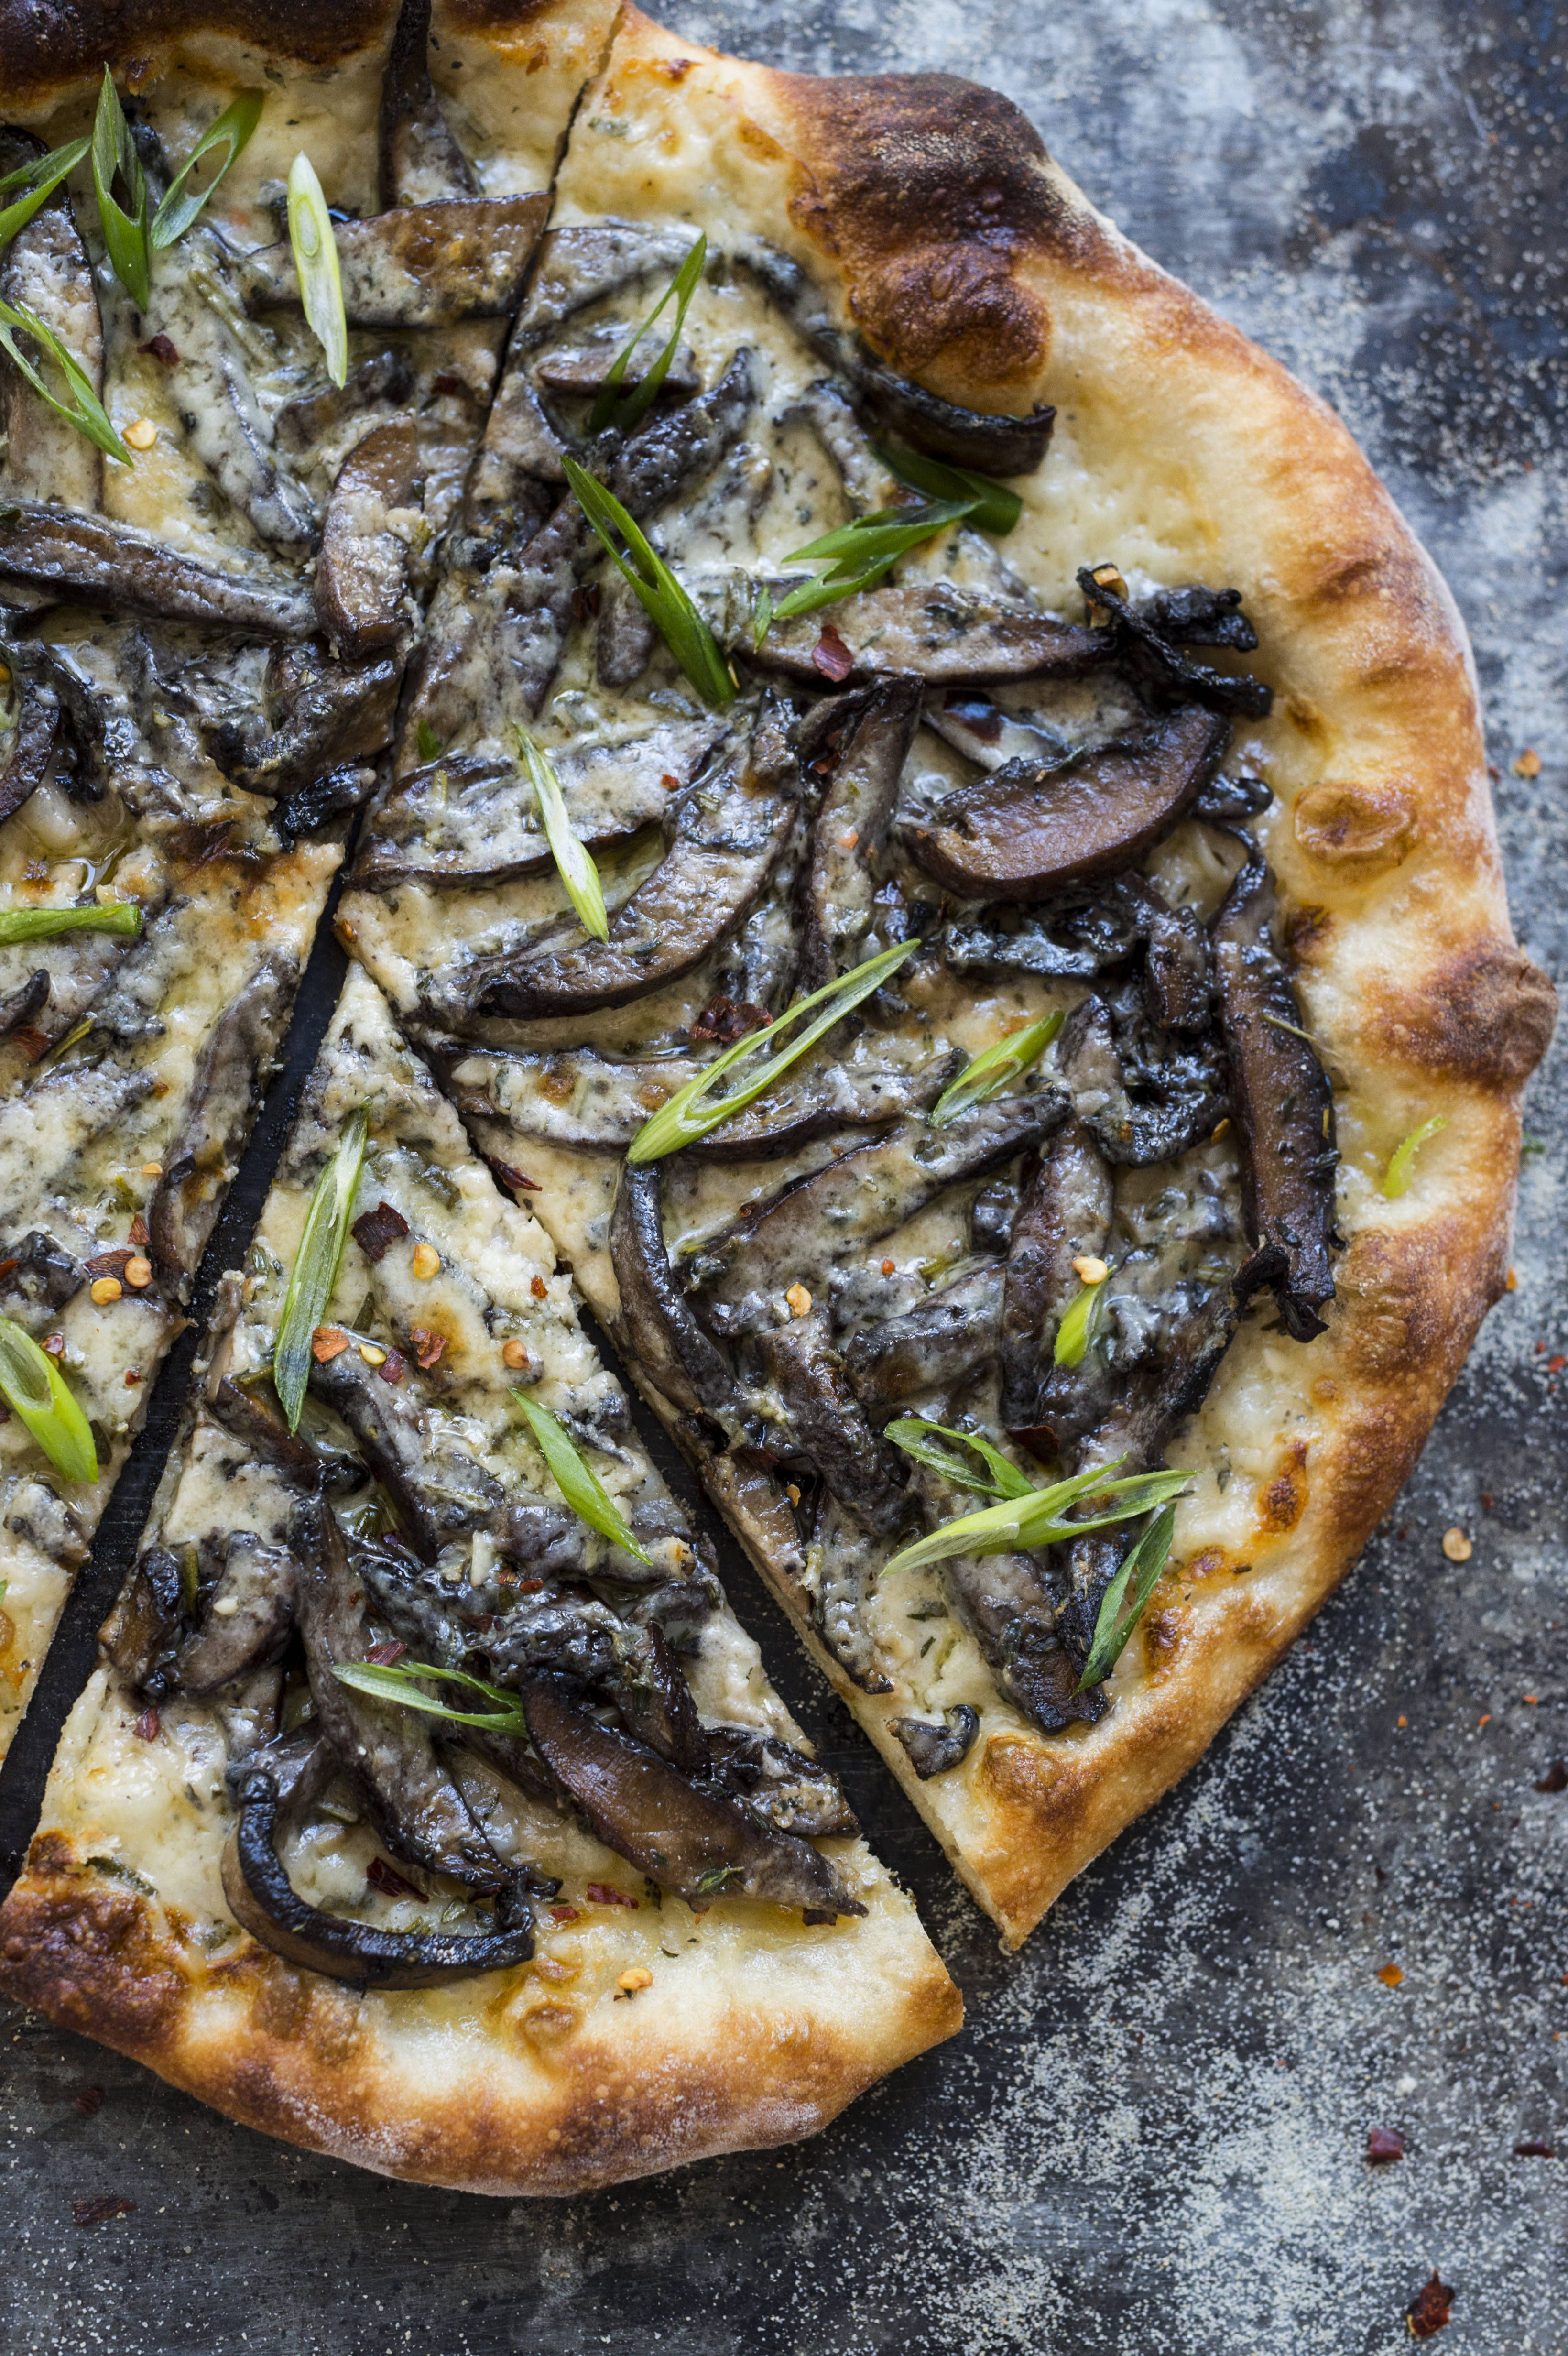 Roasted Mushroom Pizza with Fontina and Scallions